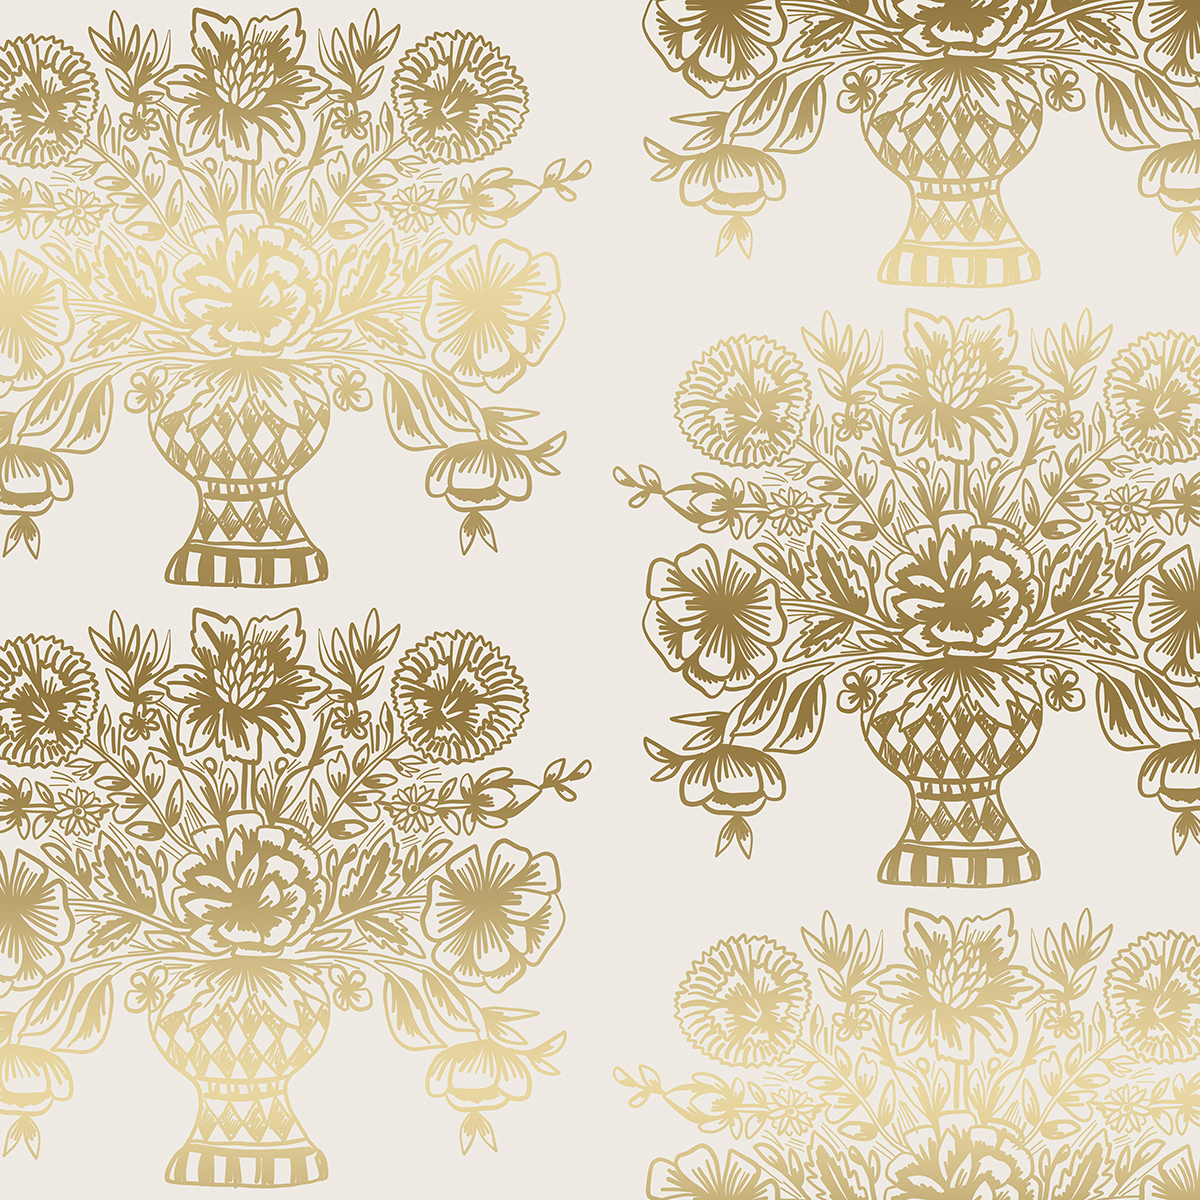 Rifle Paper Meadow - Vase Block Print (Cream Metallic)